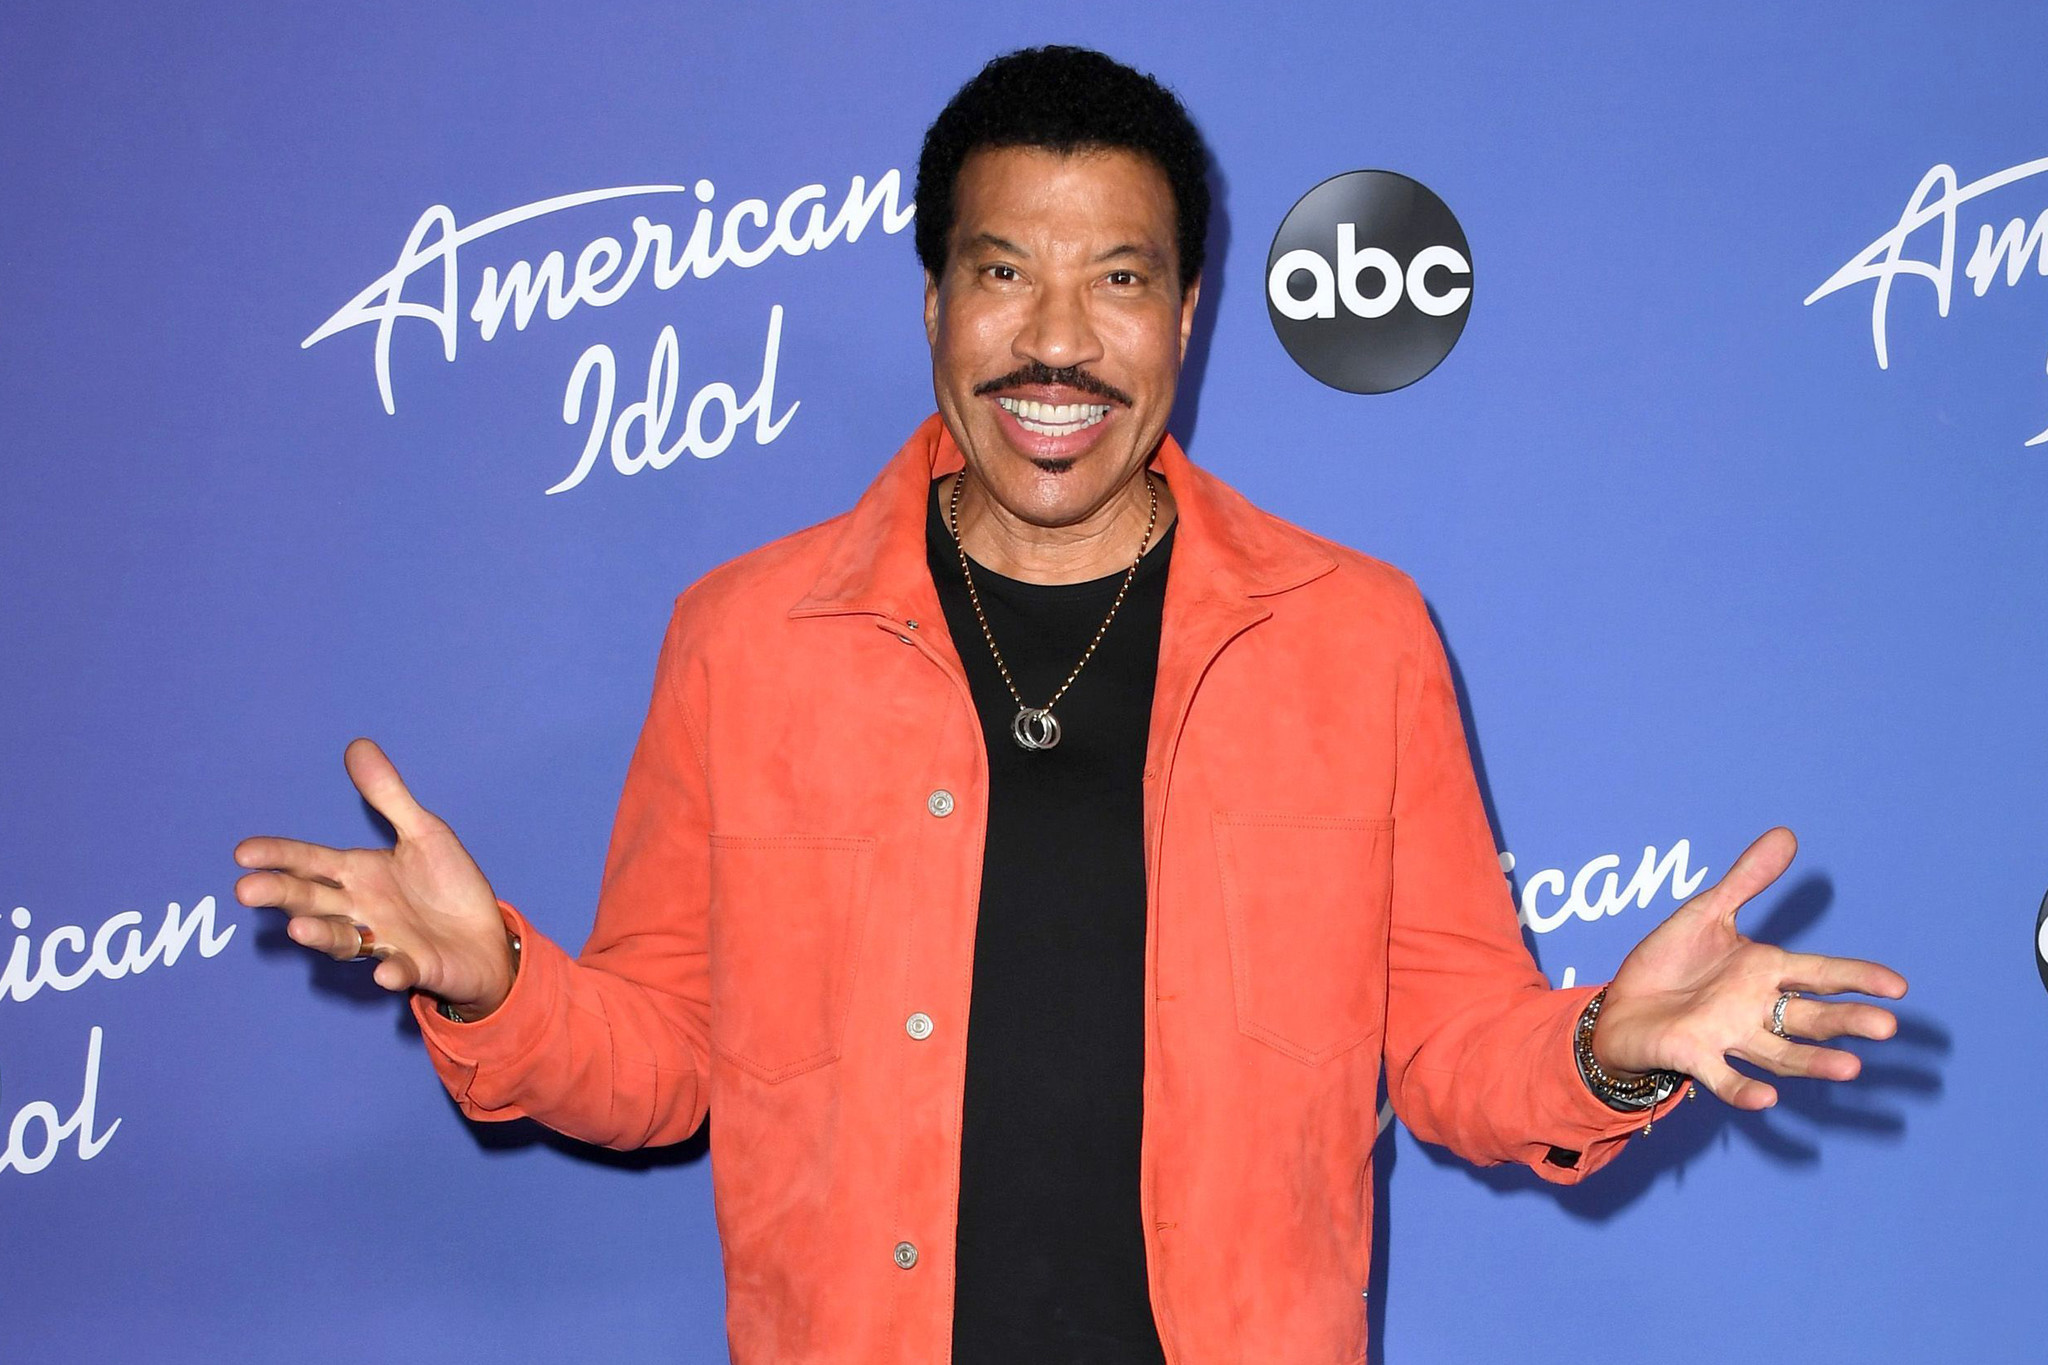 Amid coronavirus crisis, Lionel Richie considers reviving 1985 charity anthem 'We Are the World'